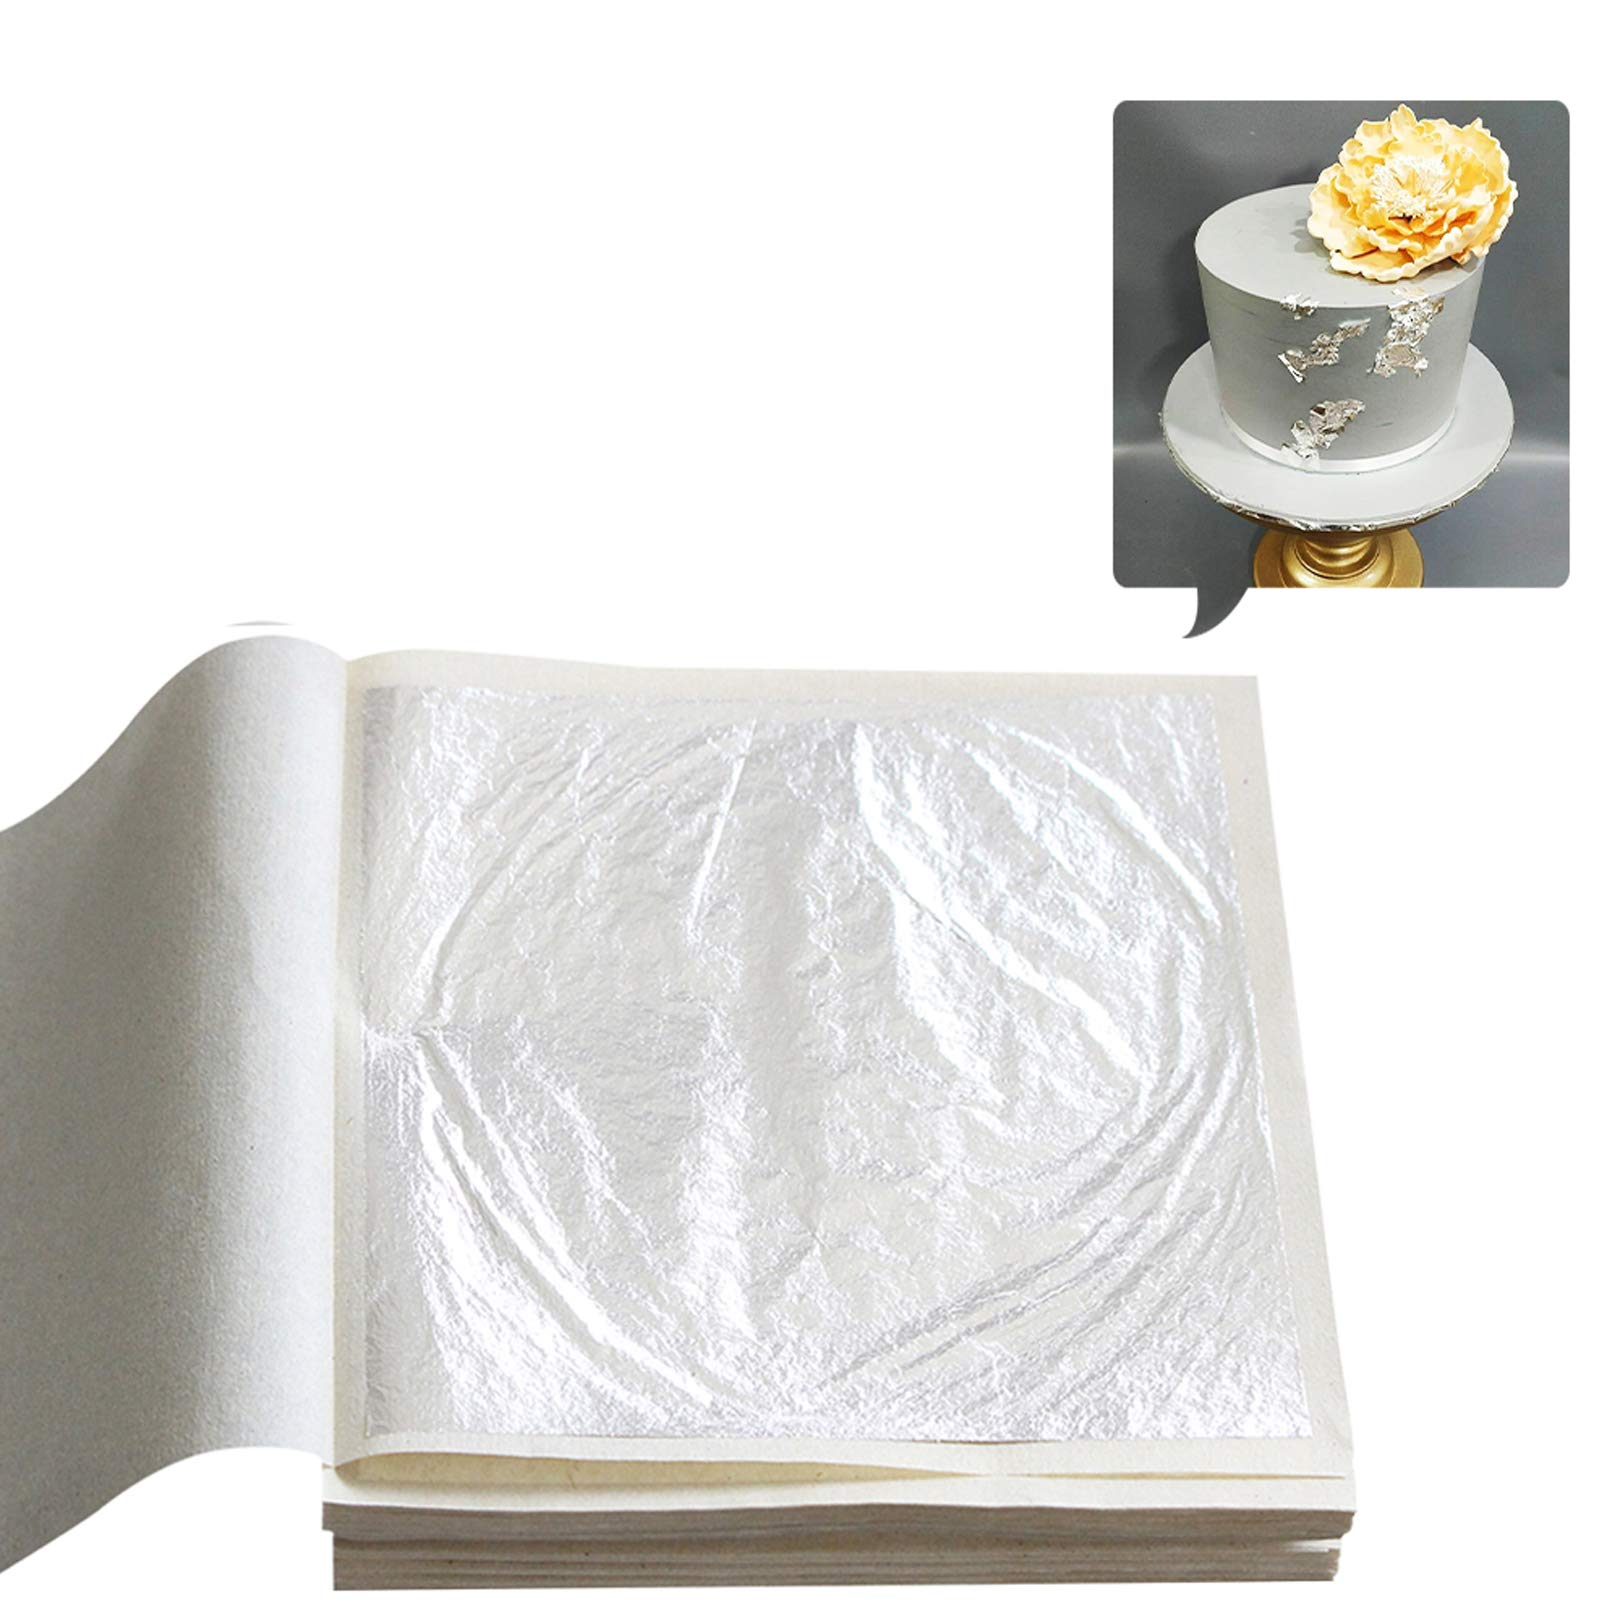 KINNO Edible Silver Leaf Sheets, Pure Silver Foil Sheet 4.33'' x 4.33'' for Facial, Health & Spa and Cooking, Cakes, Chocolate Decor 10 Pieces